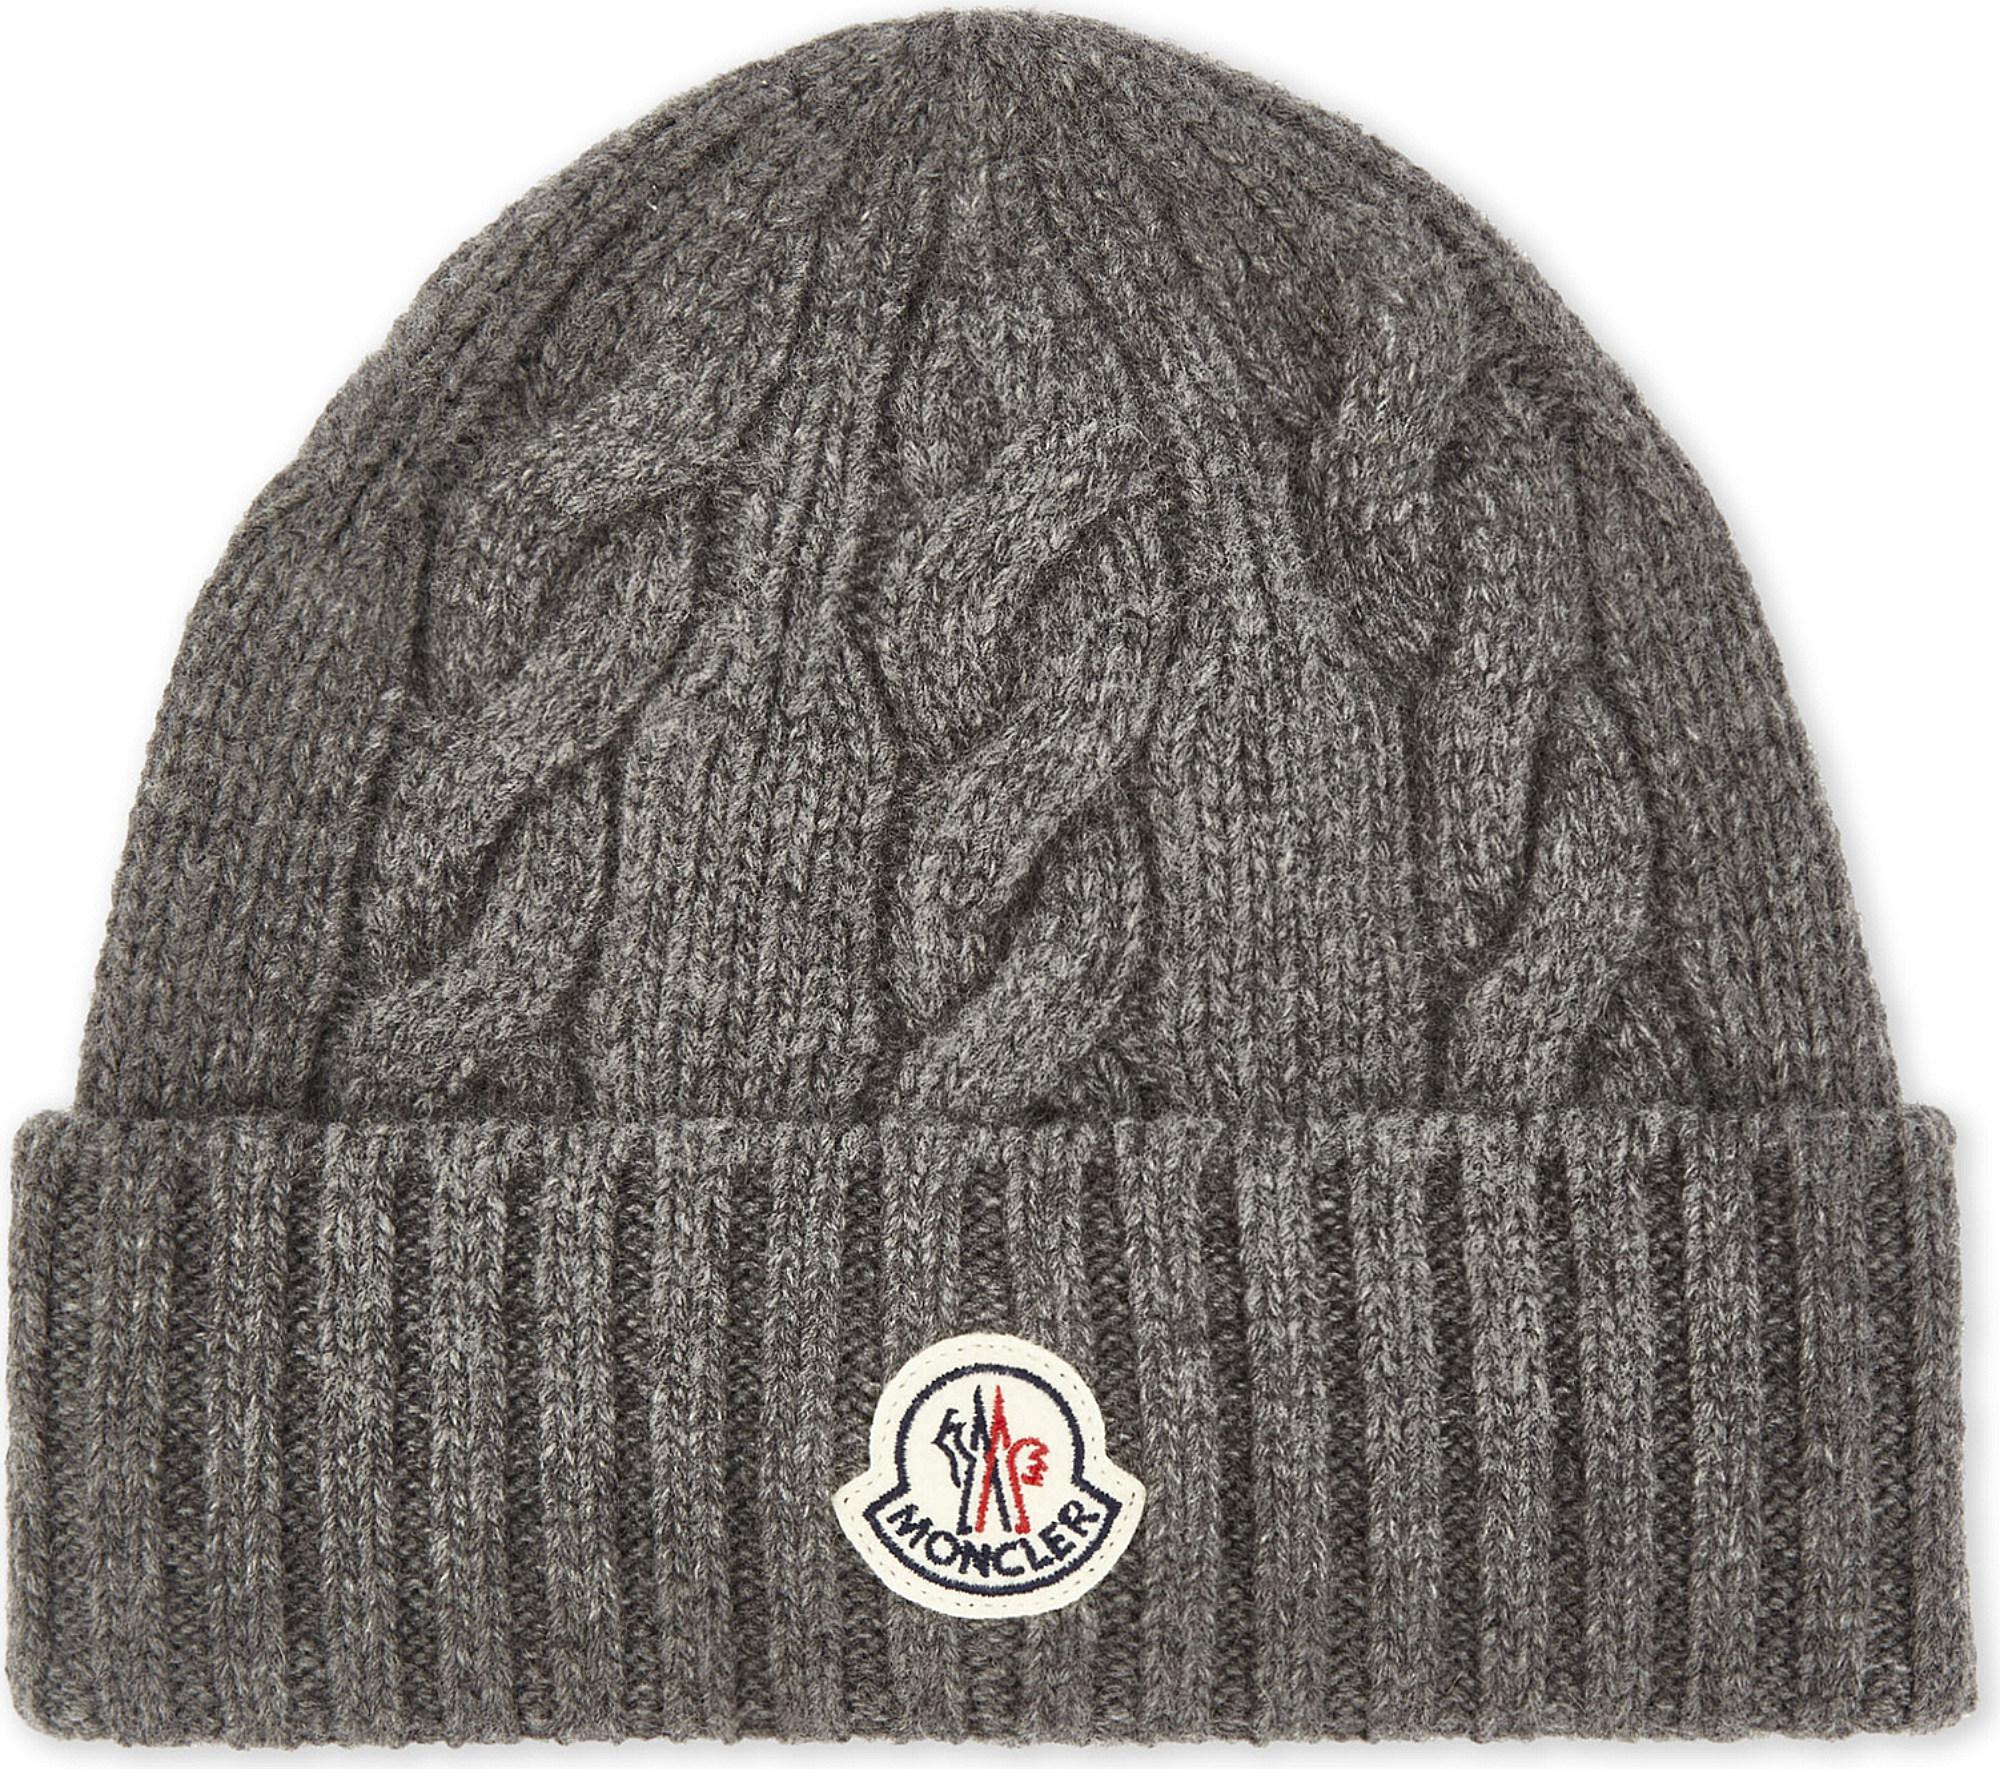 734400facaa Lyst - Moncler Cable Knit Wool Beanie in Gray